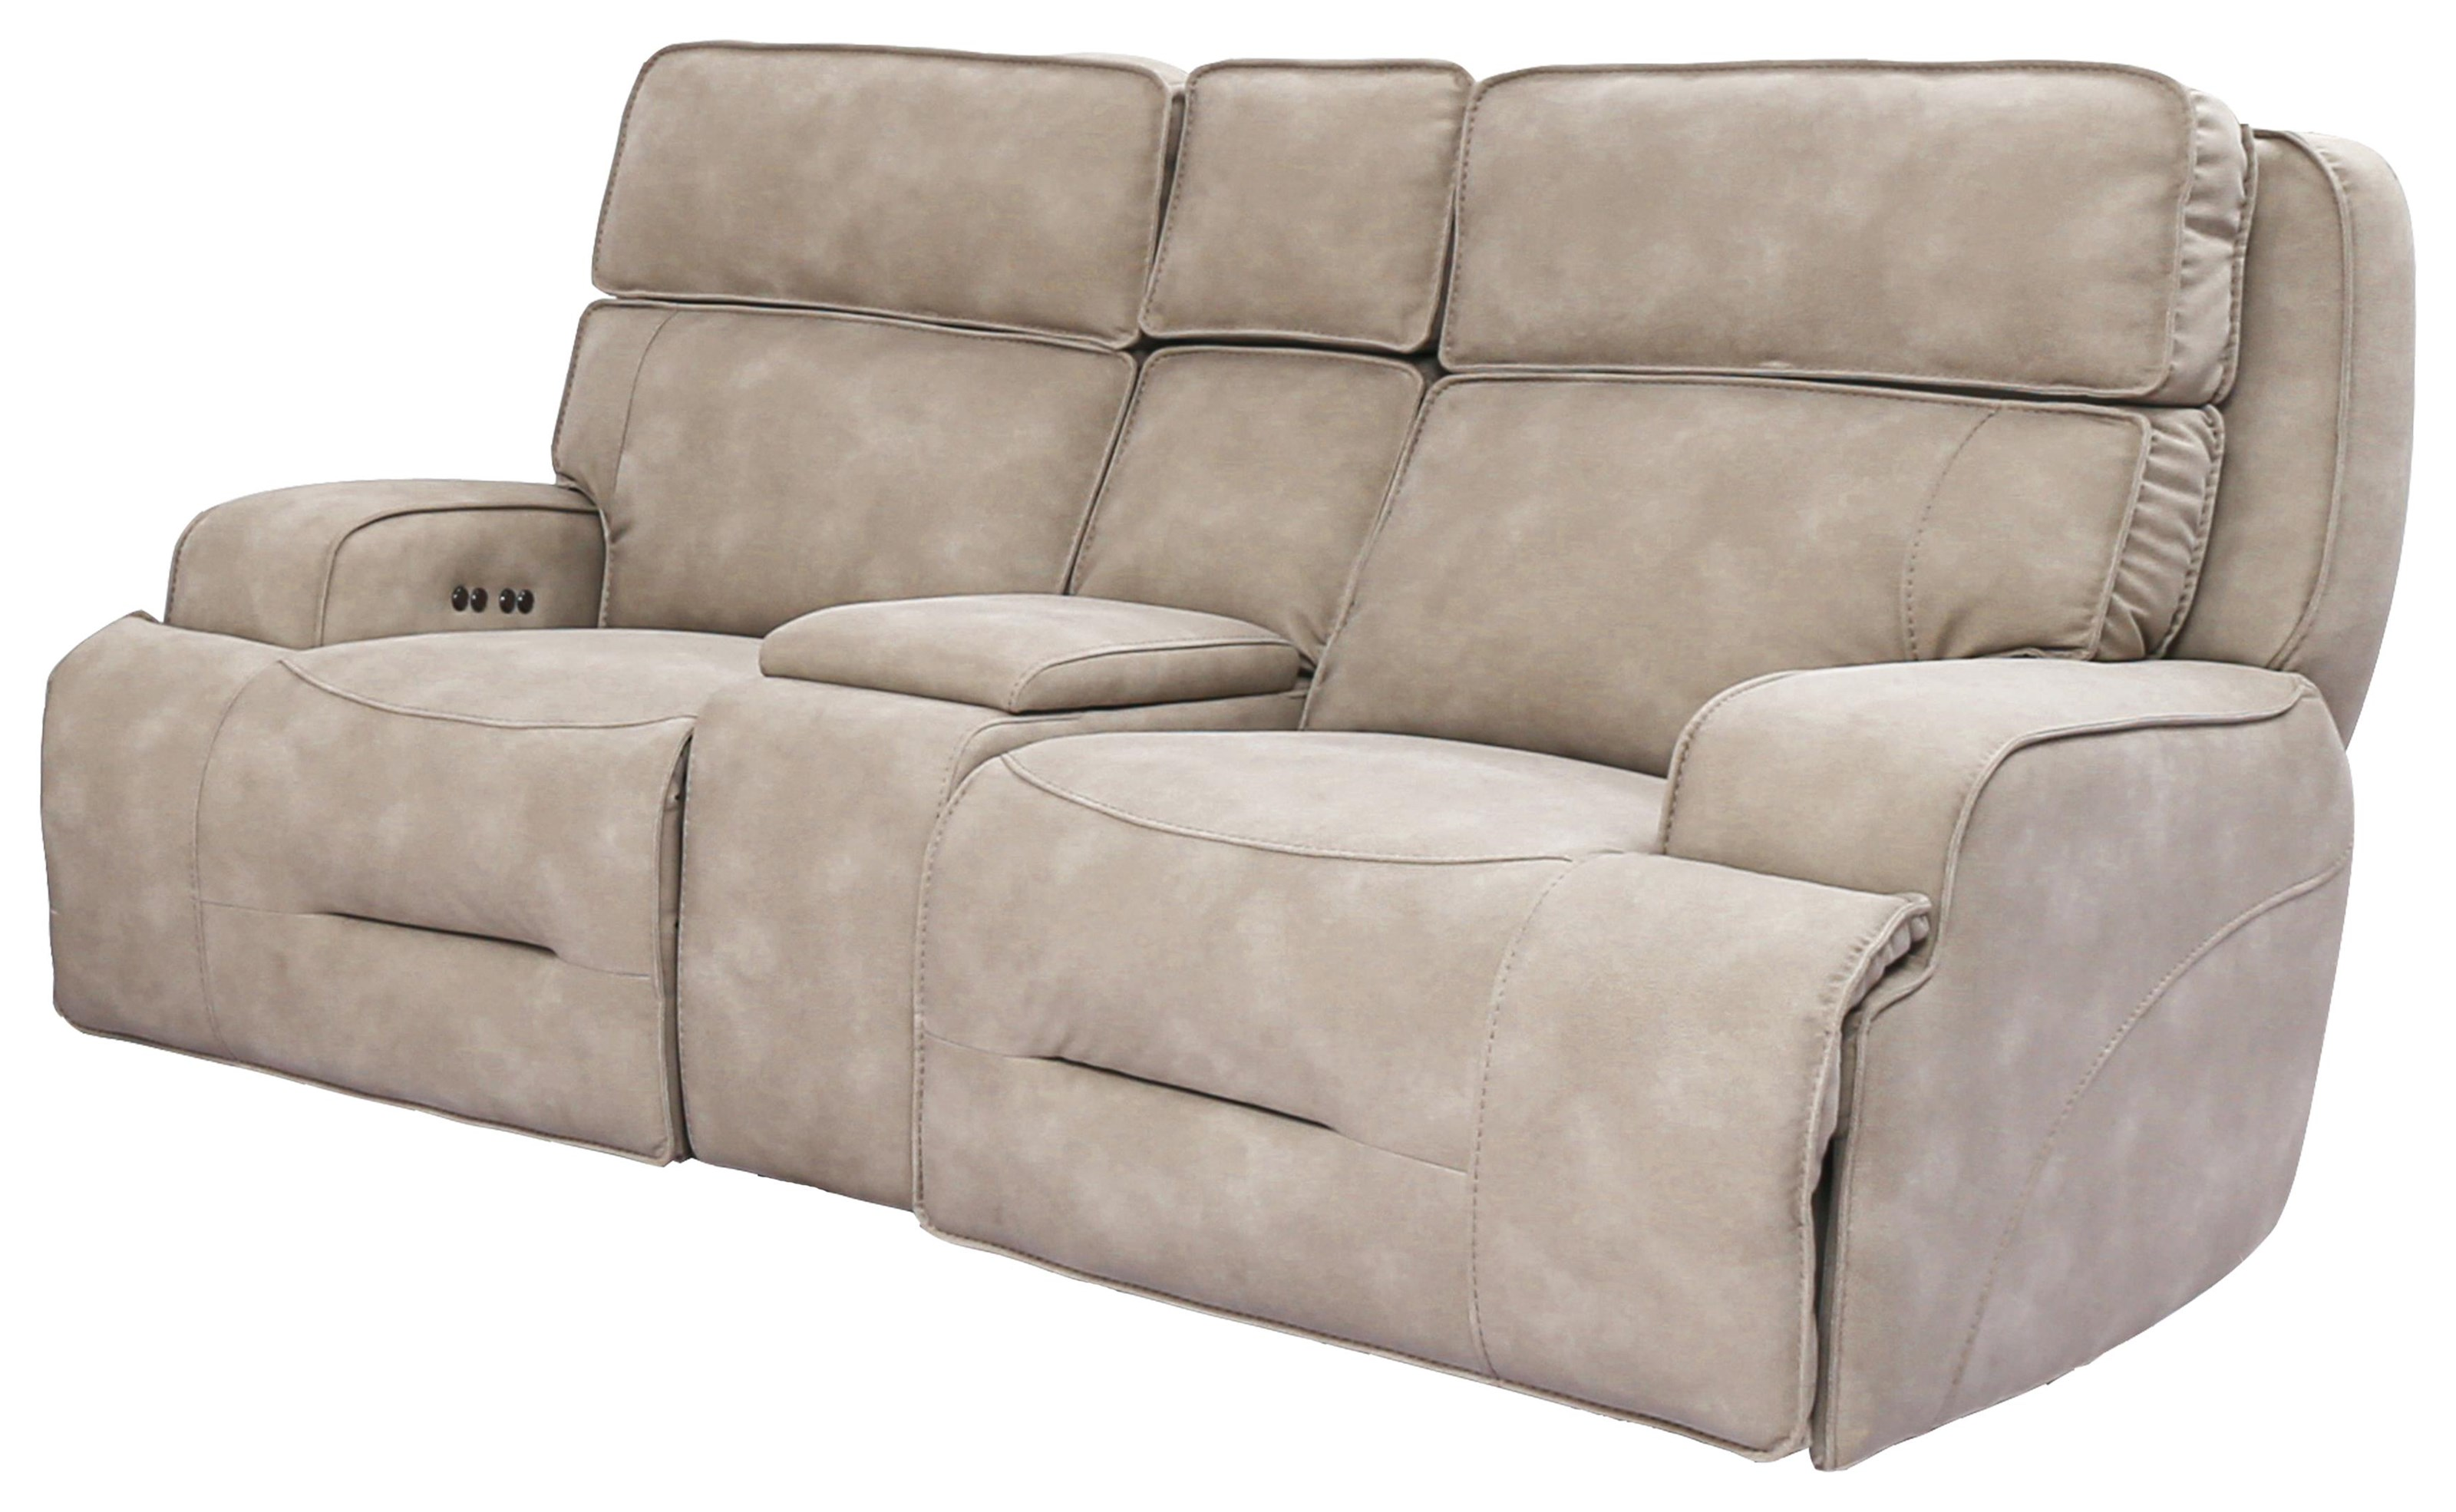 90029 Power Reclining Loveseat with Power Headrest by Cheers at Beck's Furniture